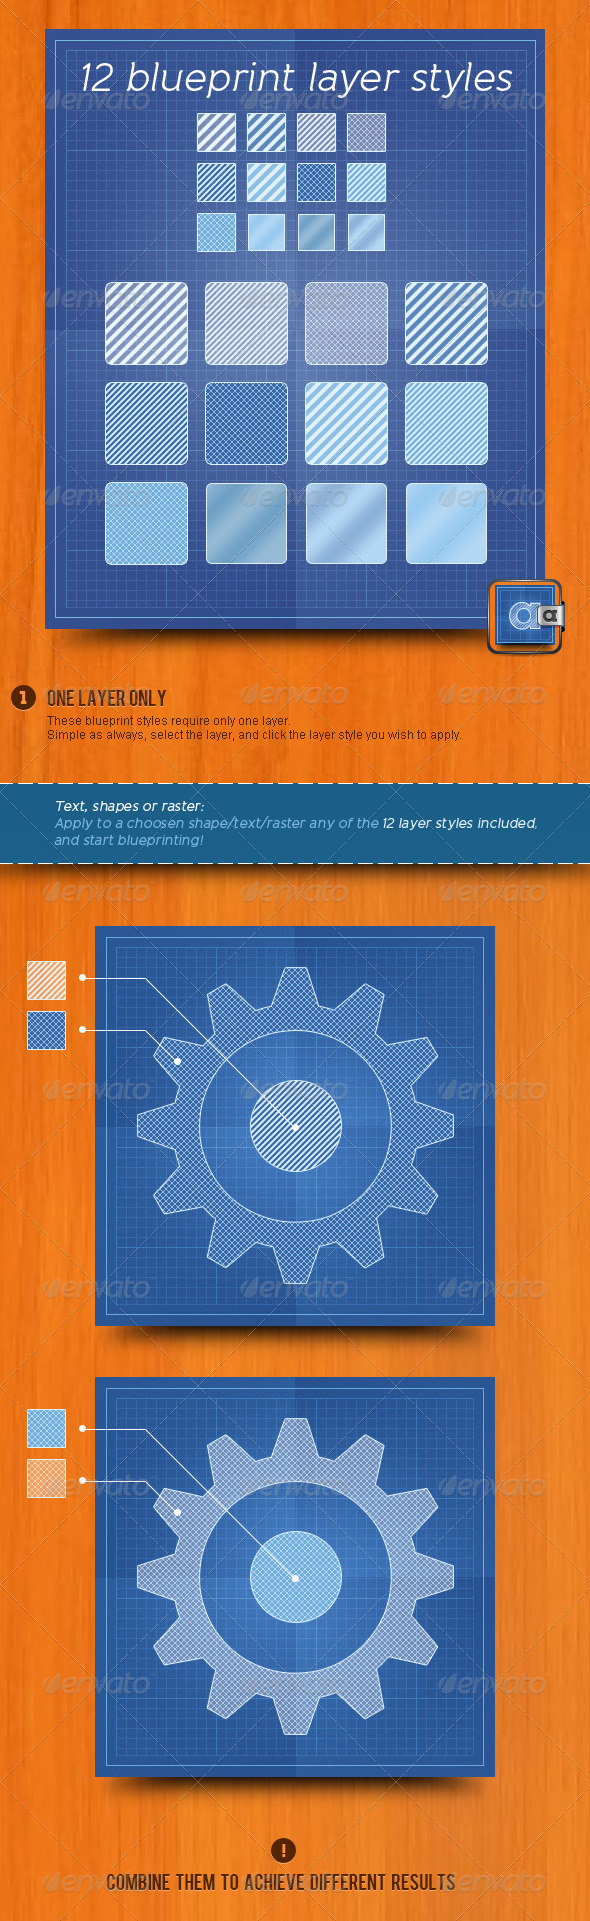 Blueprint Layer Styles - Text Effects Styles